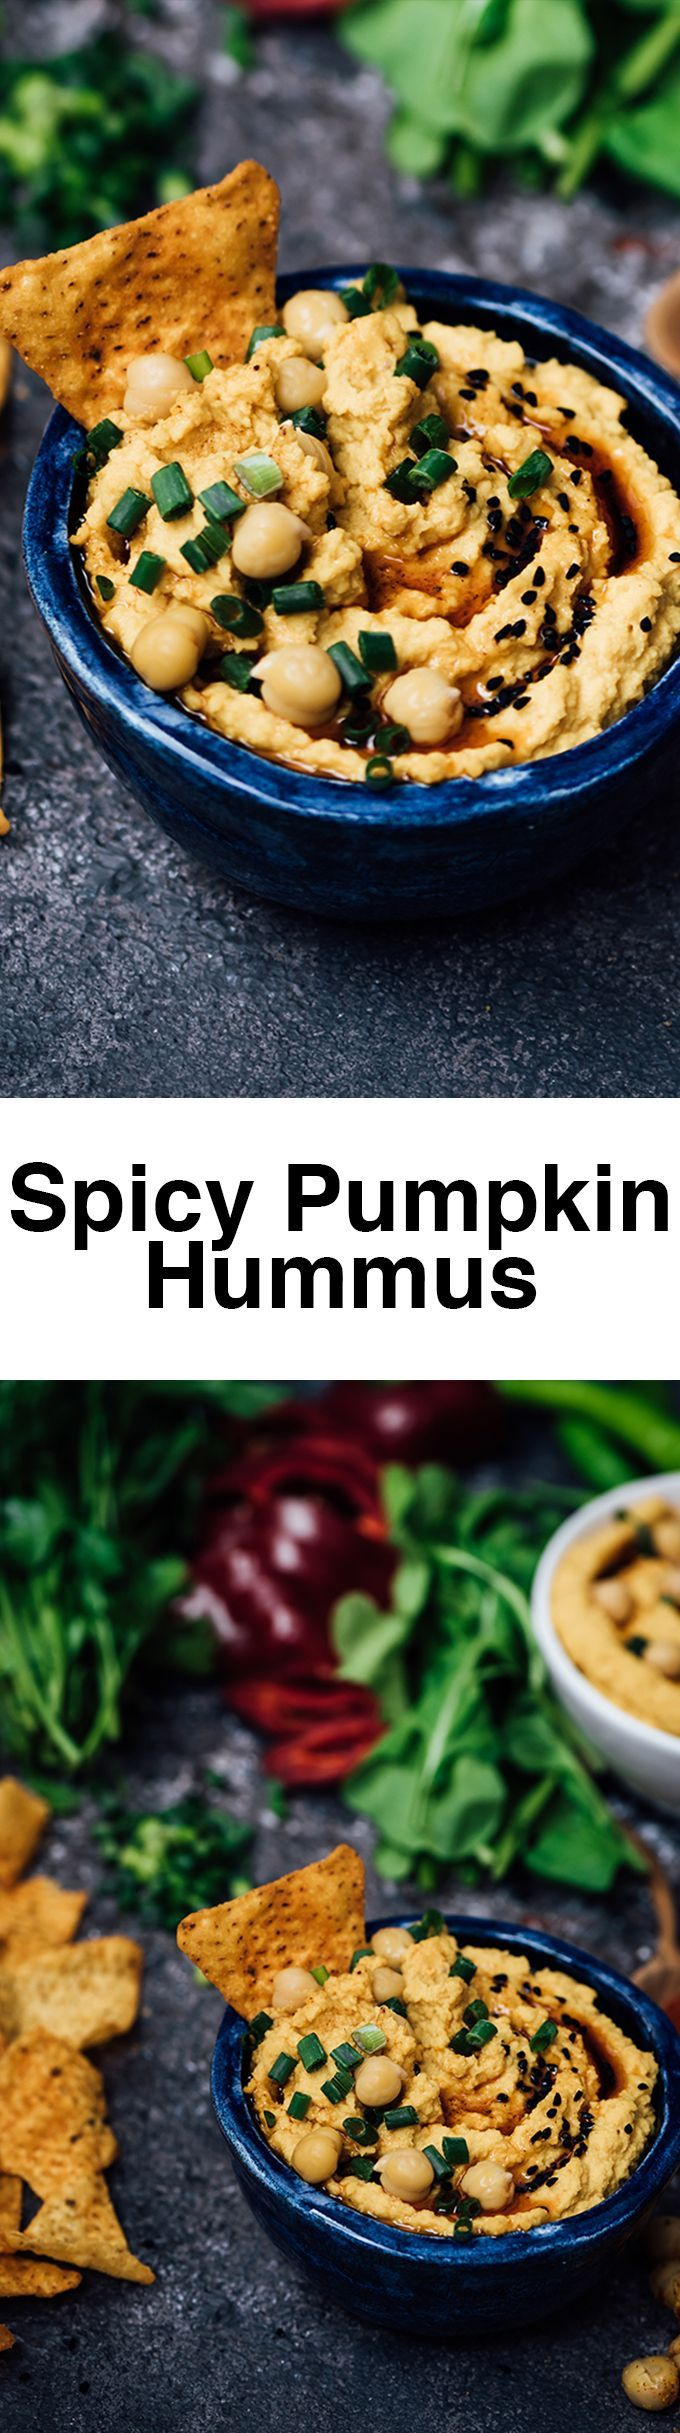 Spicy Pumpkin Hummus is a perfect appetizer for your fall parties. I can proudly say that this is the best hummus I've ever made. We love the subtle pumpkin taste in our regular hummus. Plus it has got a super food that nobody can notice.